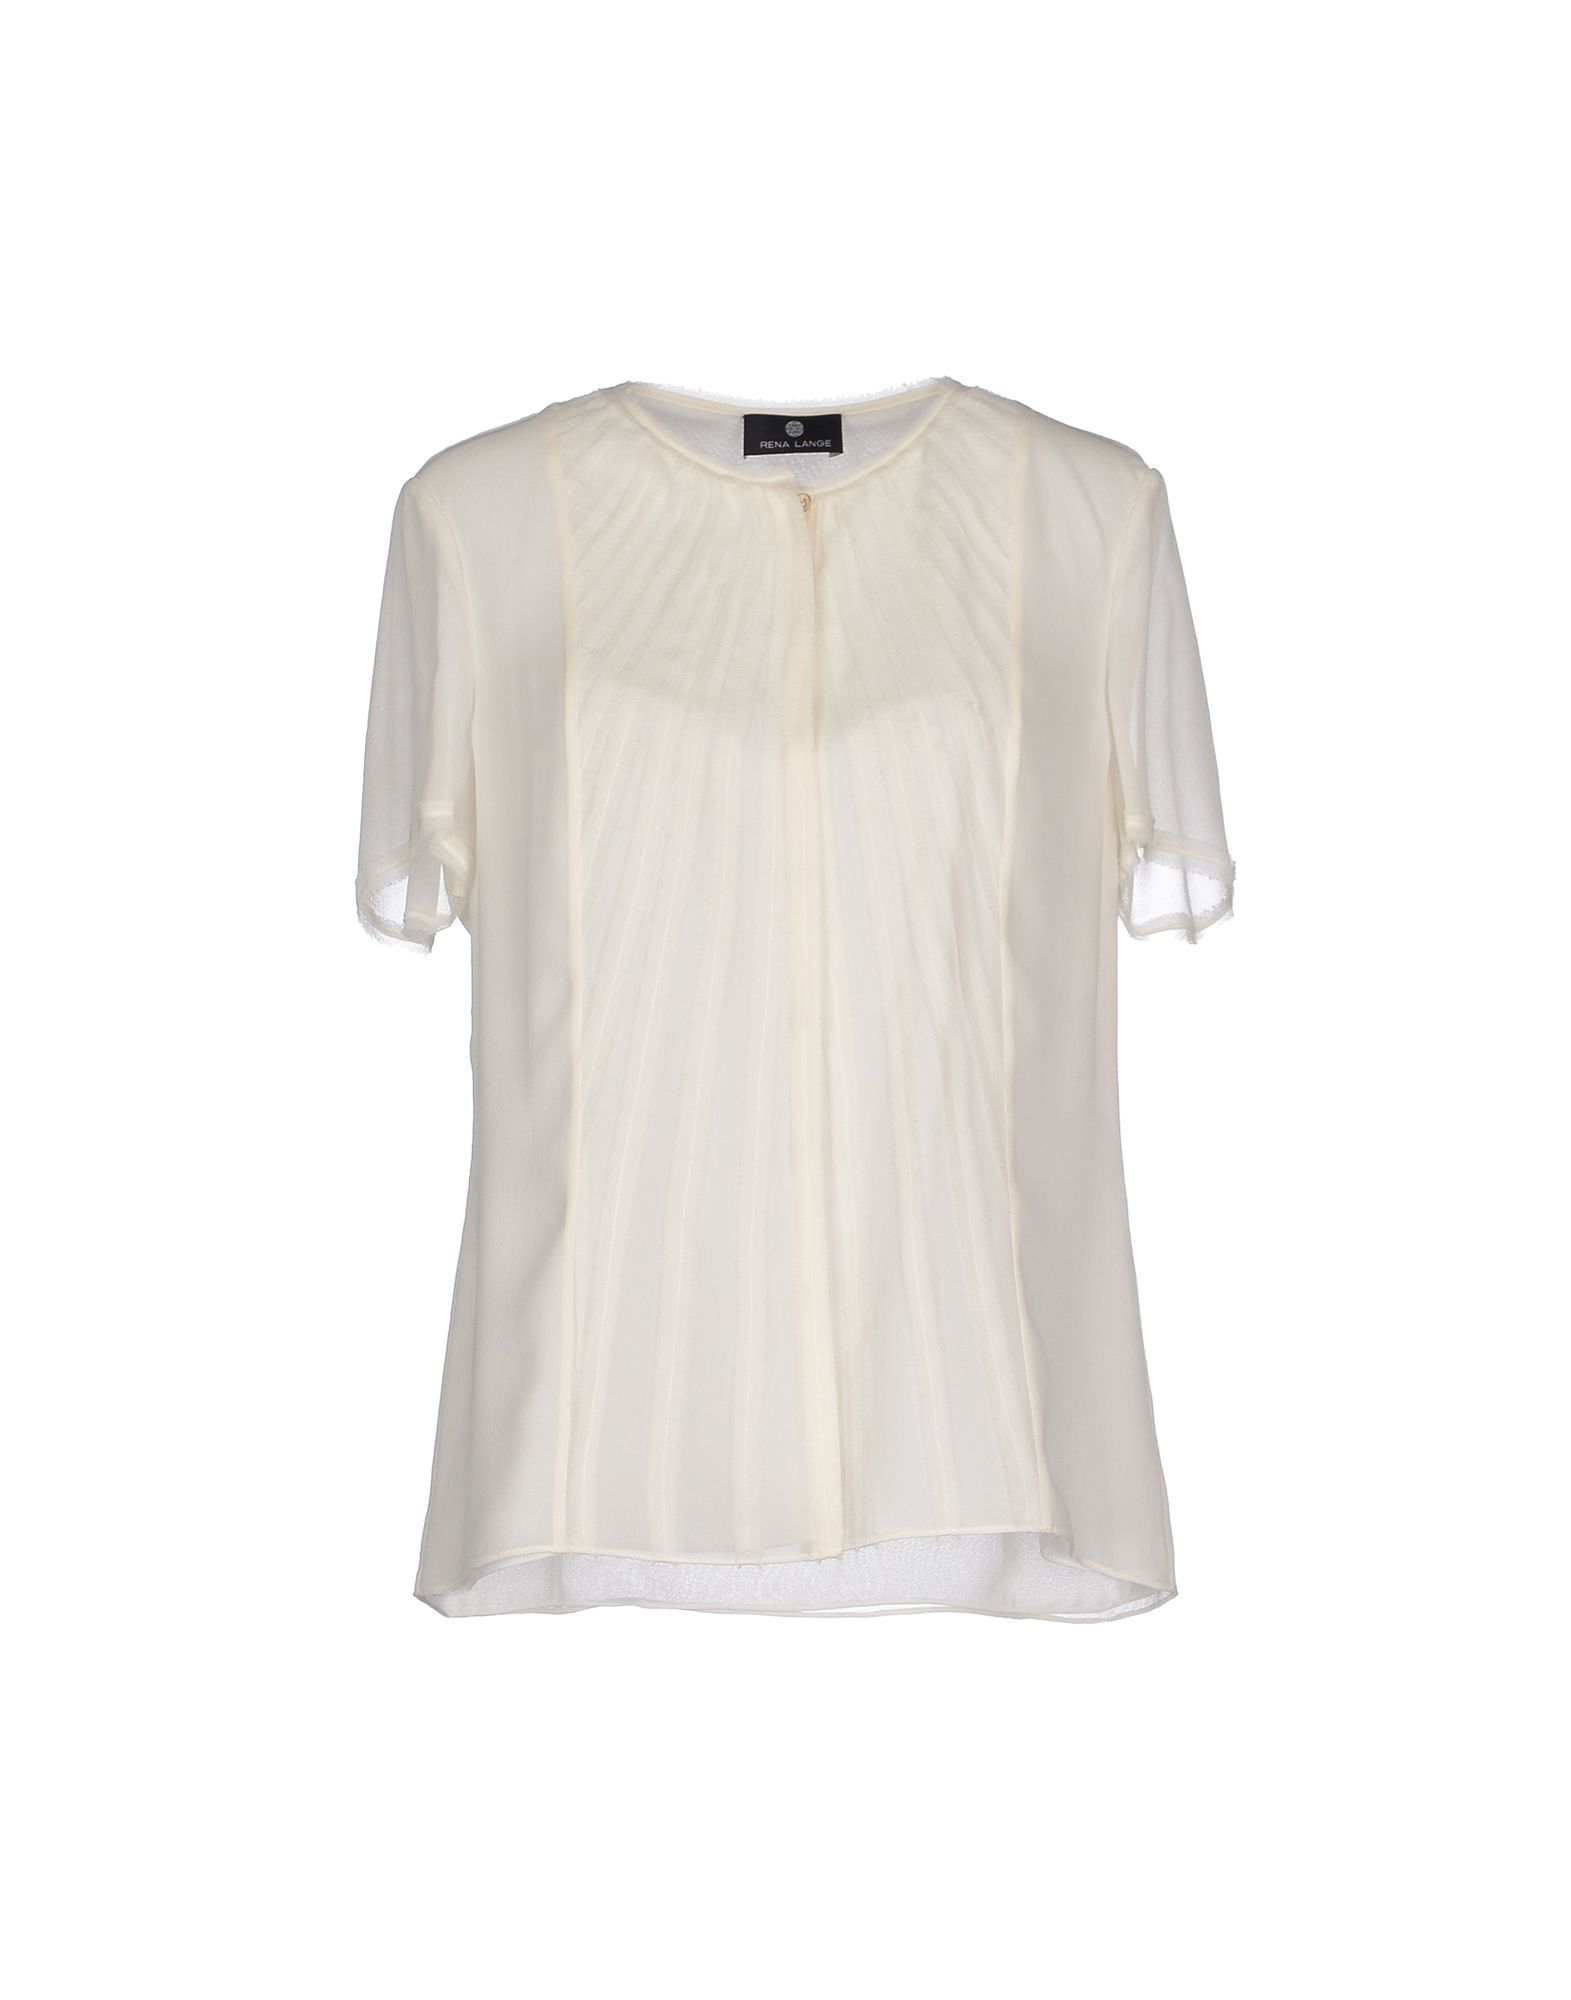 SHIRTS - Blouses Rena Lange Perfect For Sale xOuAhCU7hP